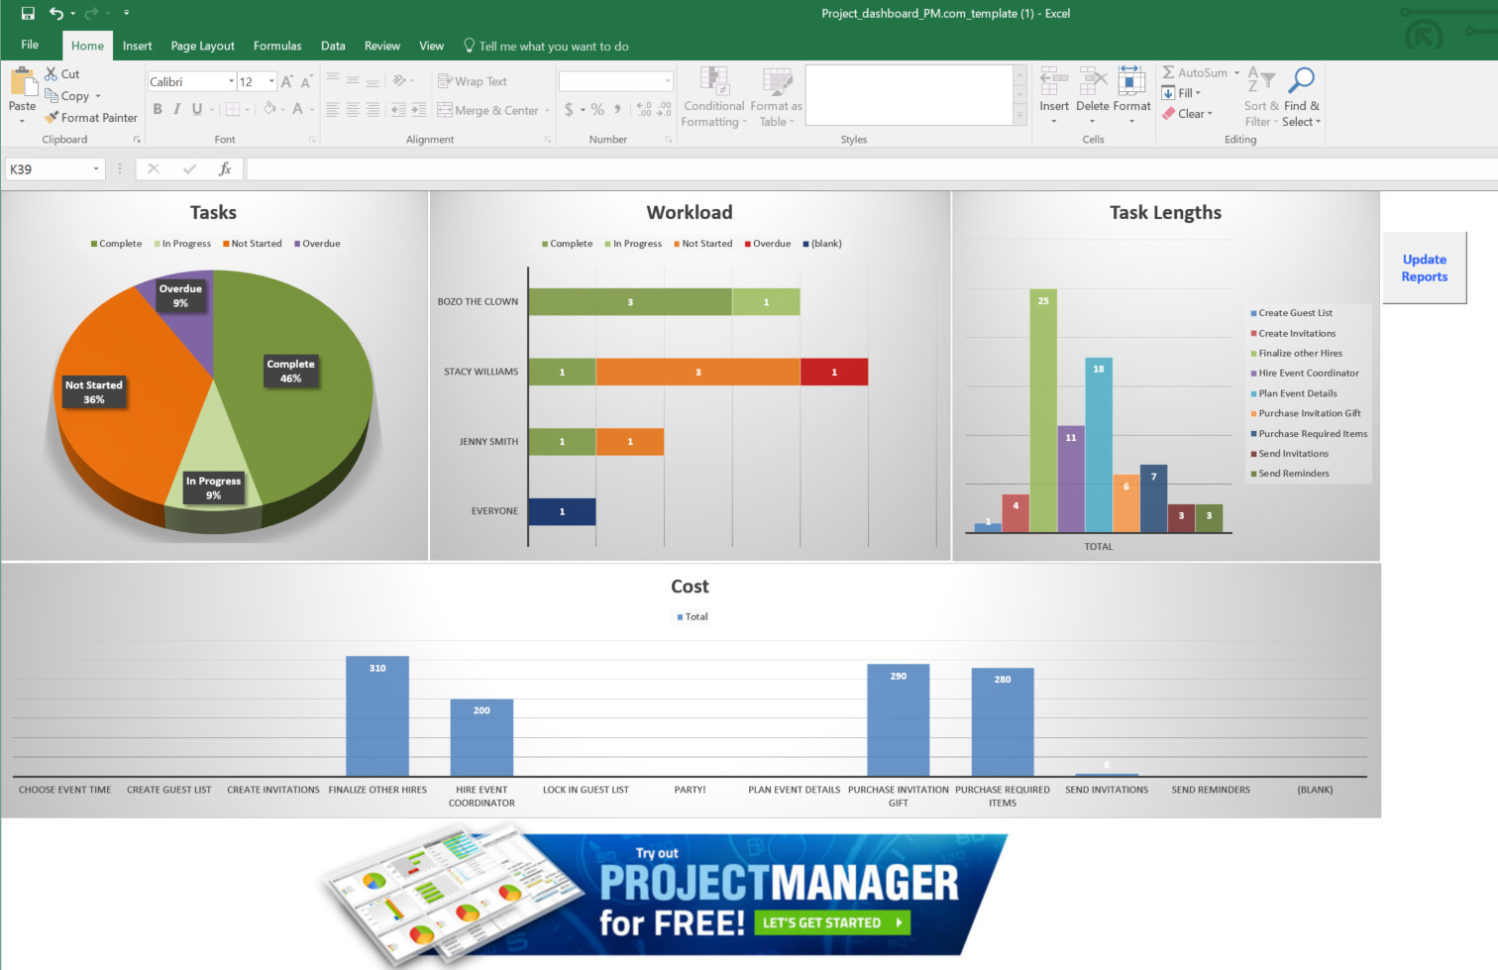 Task Manager Excel Spreadsheet With Guide To Excel Project Management  Projectmanager